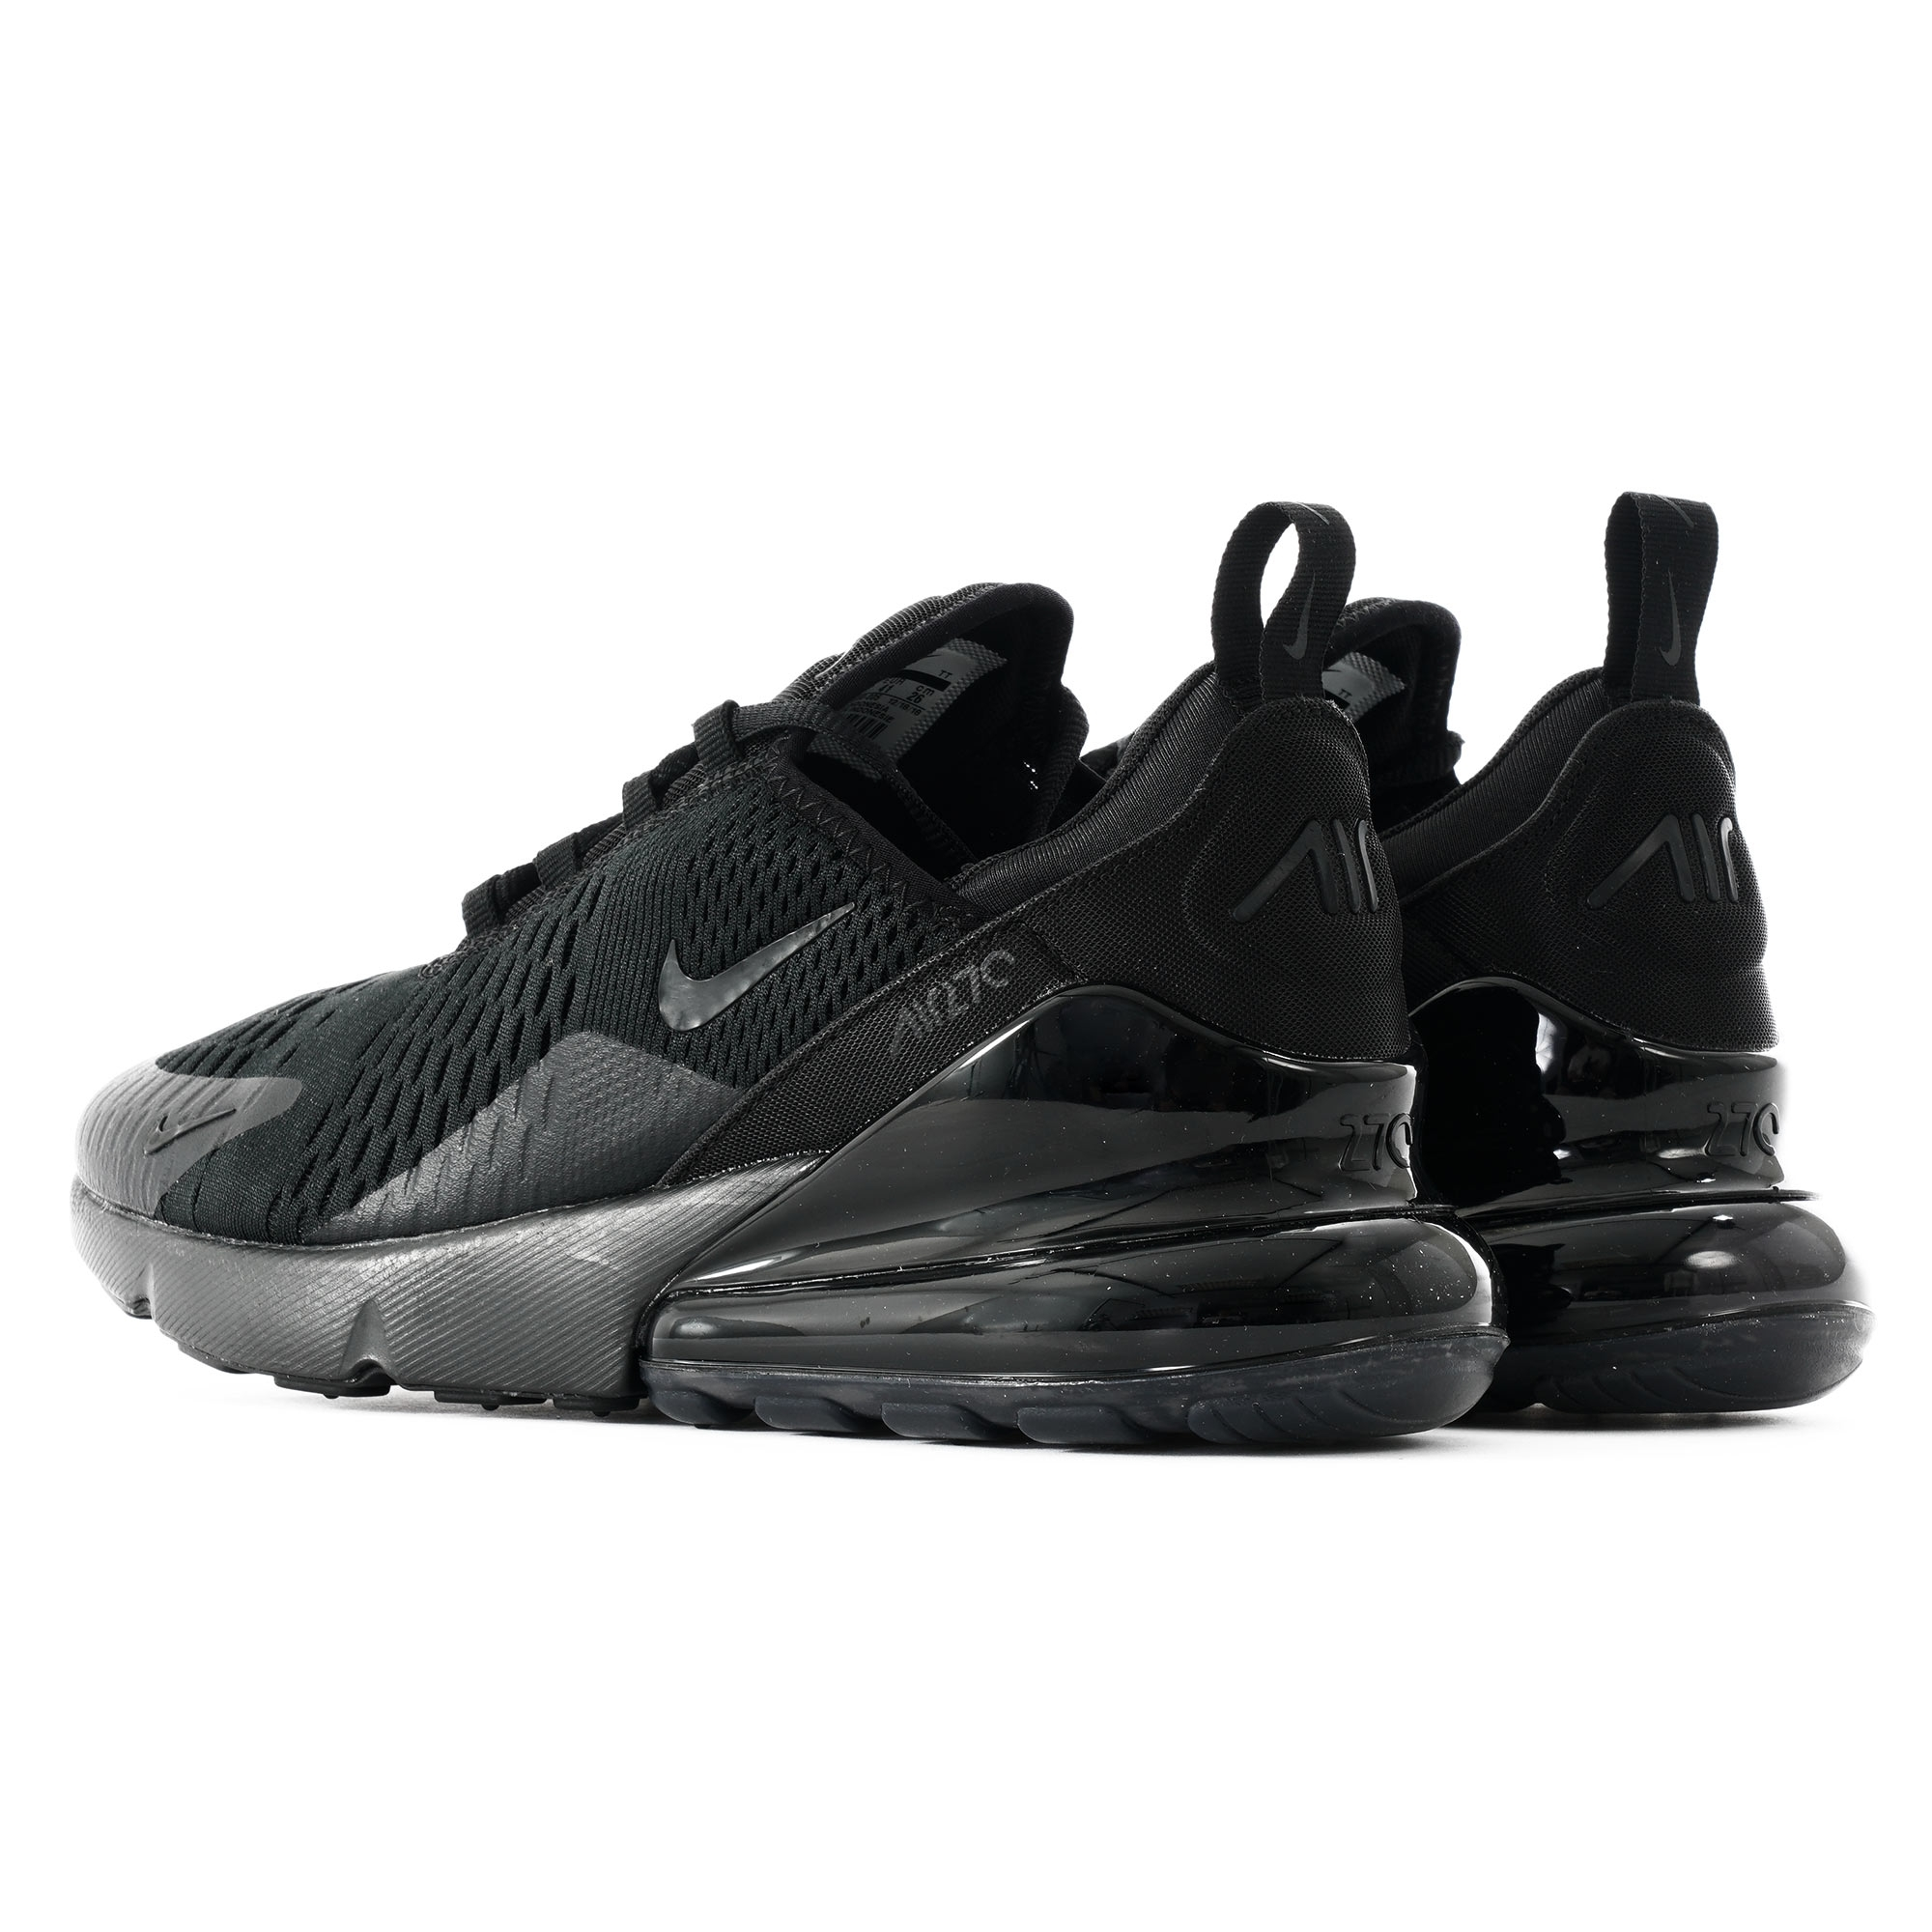 detailed look 85f11 905f6 Air Max 270 - Black